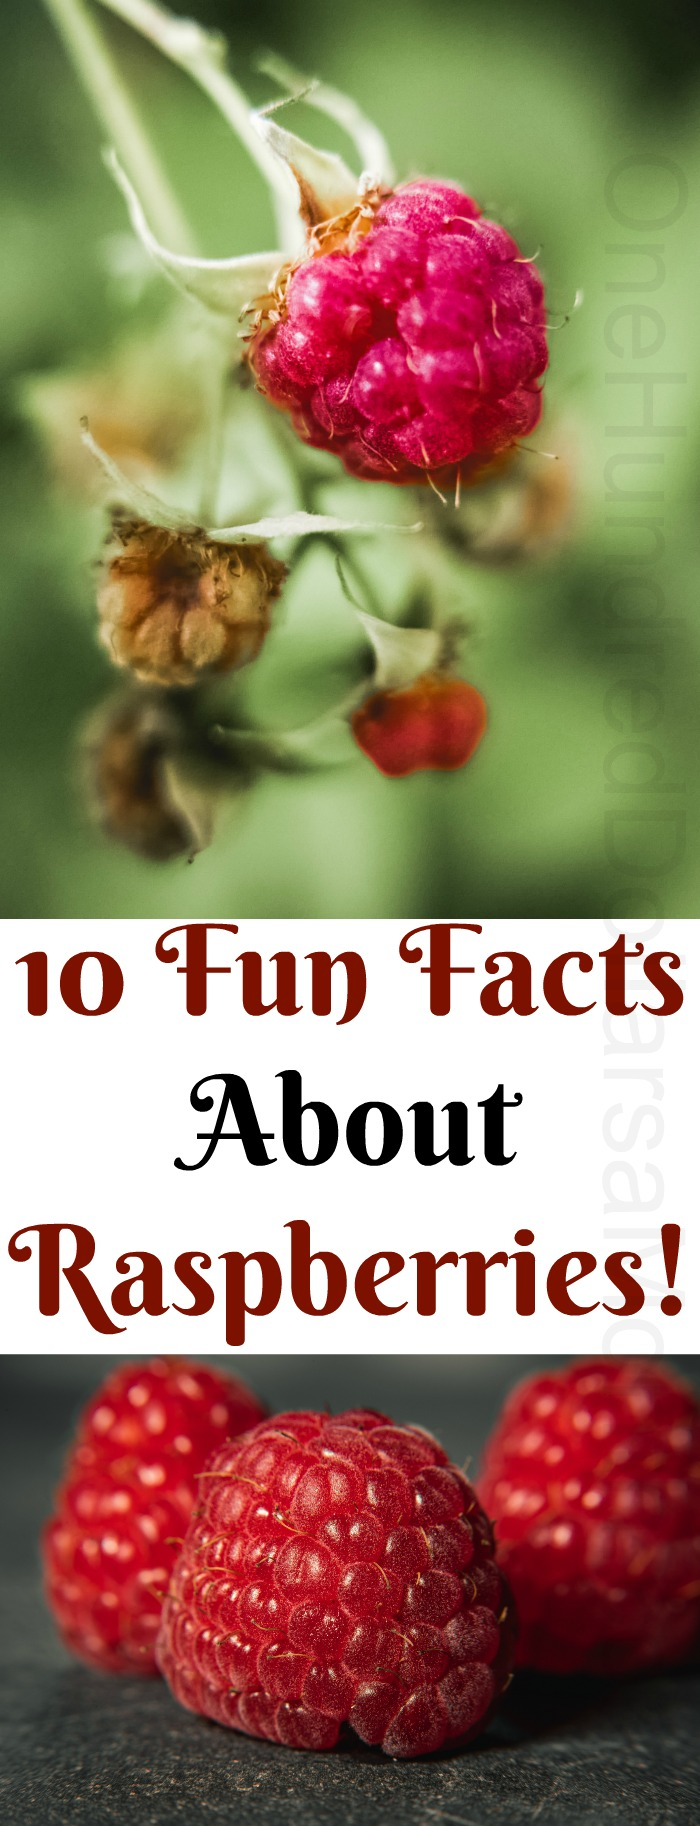 10 Fun Facts About Raspberries!